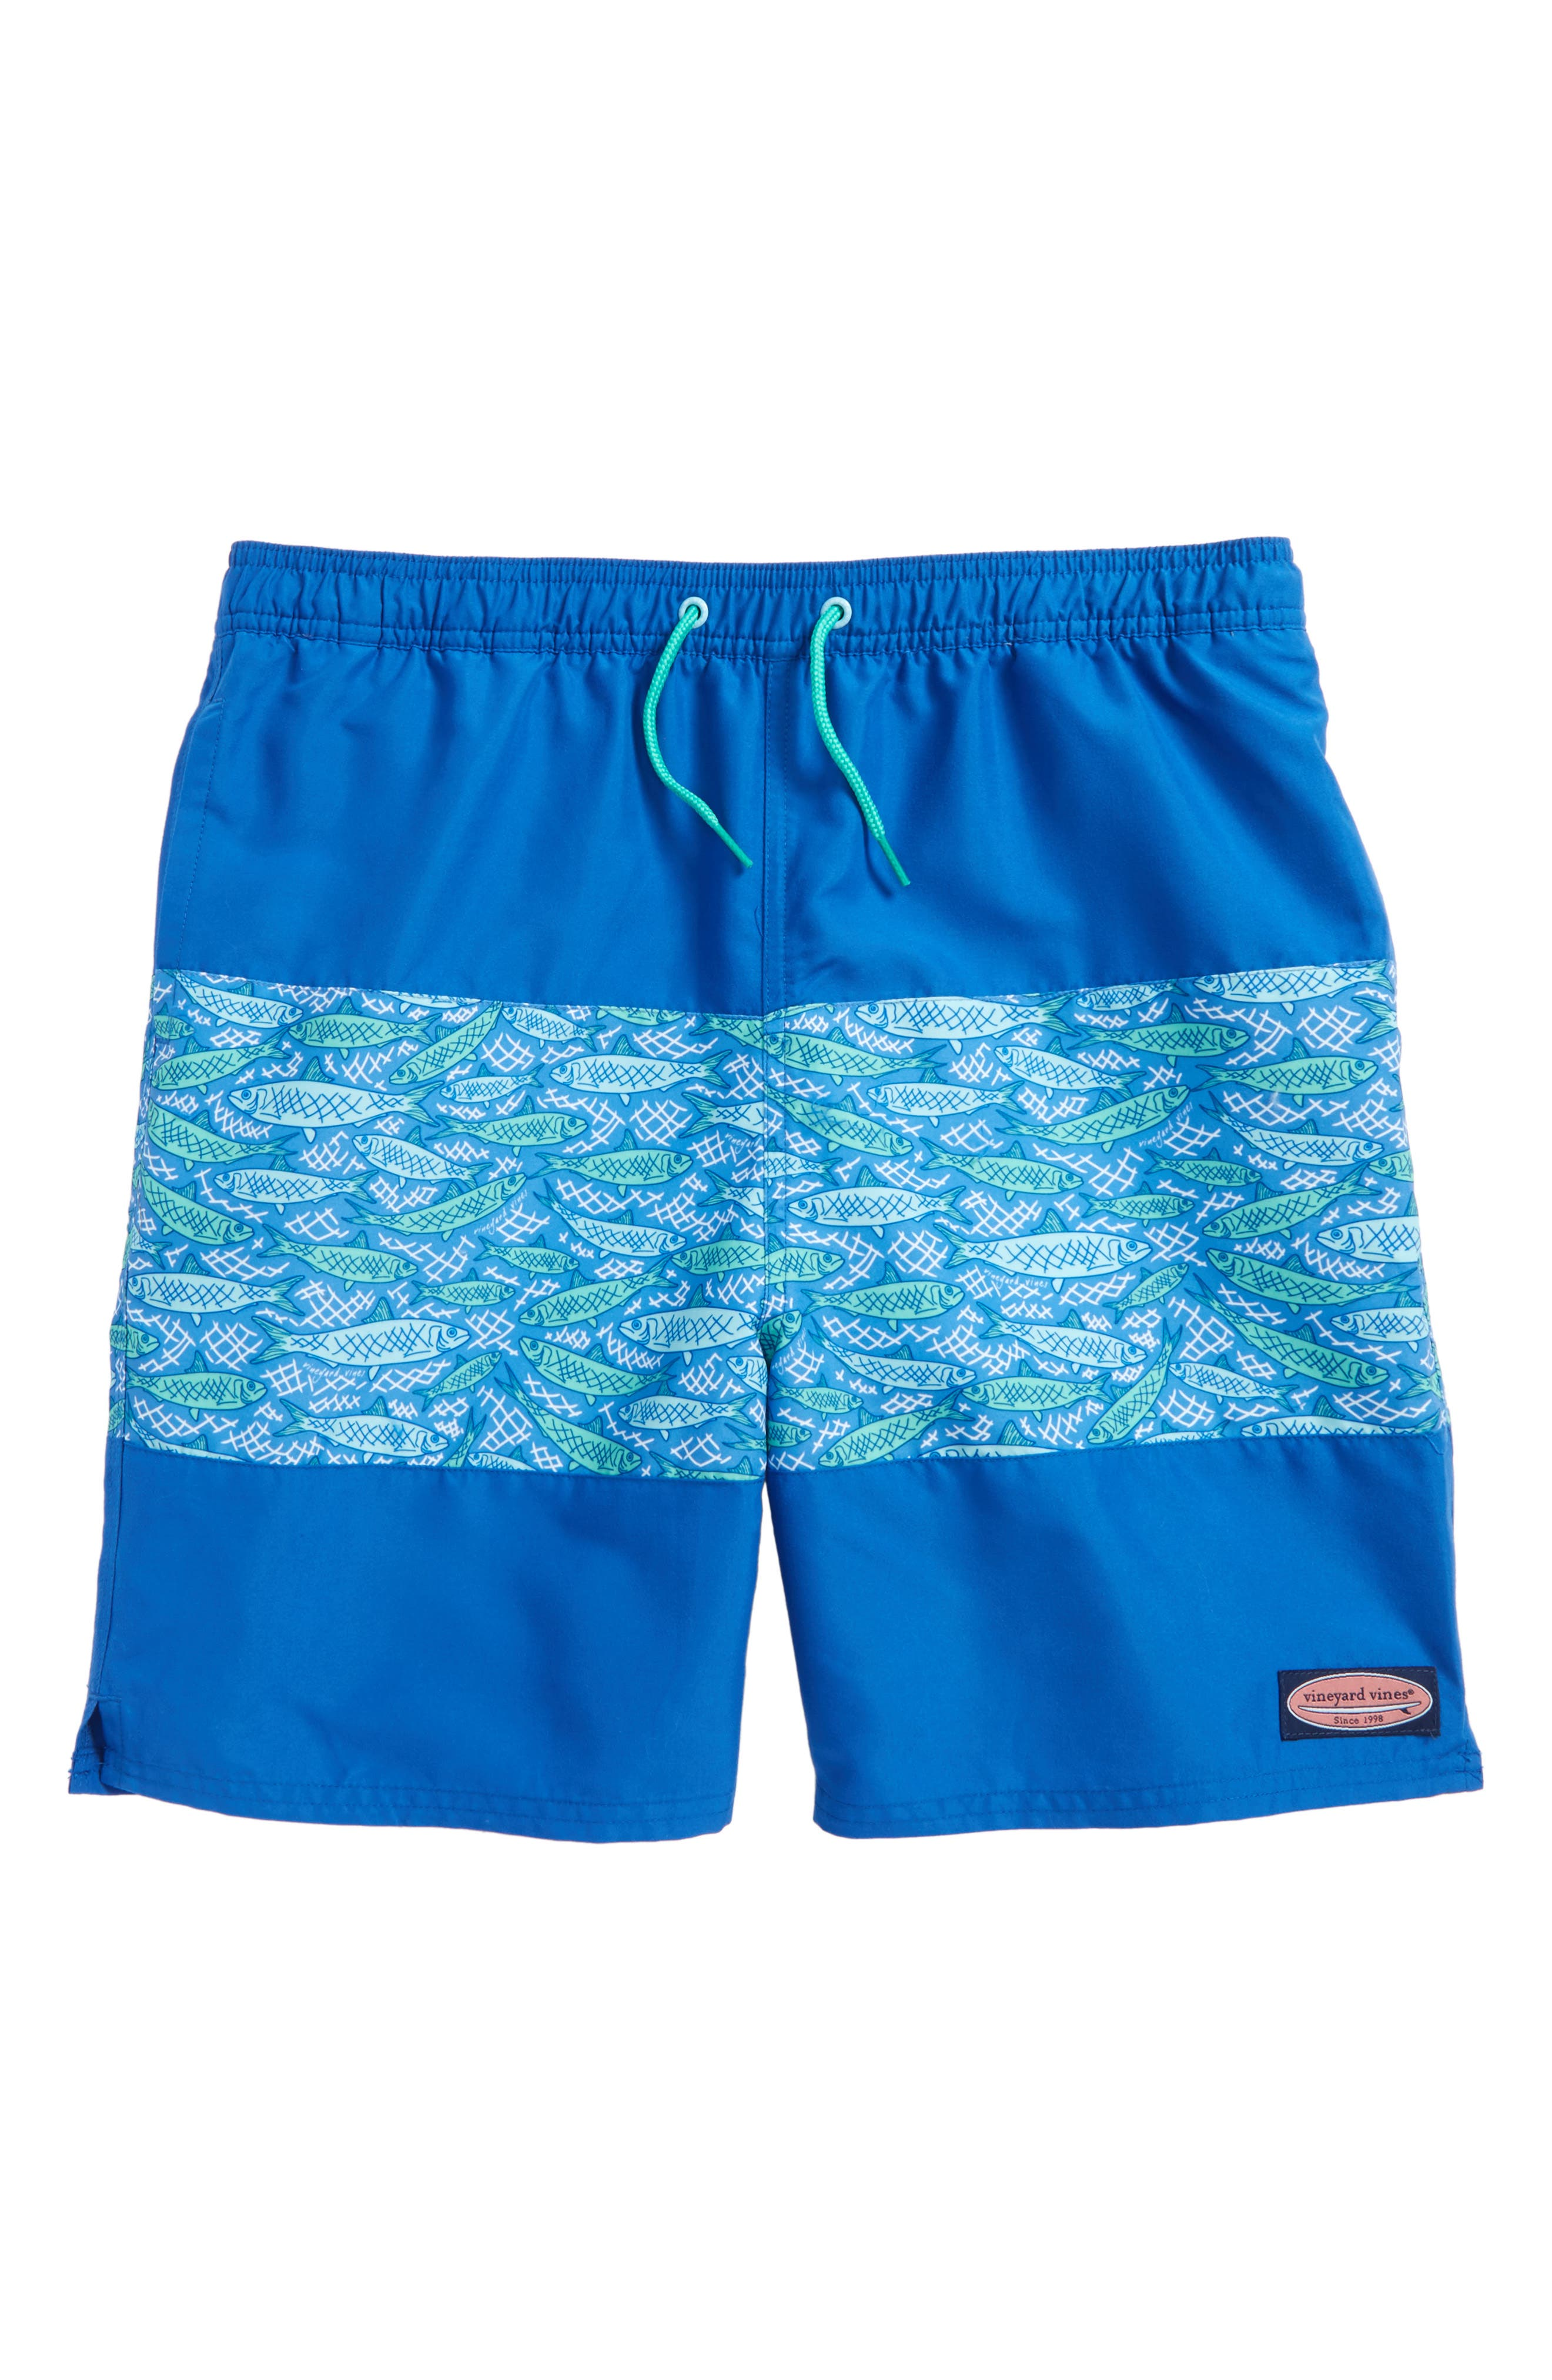 Fish Scale Chappy Swim Trunks,                         Main,                         color,